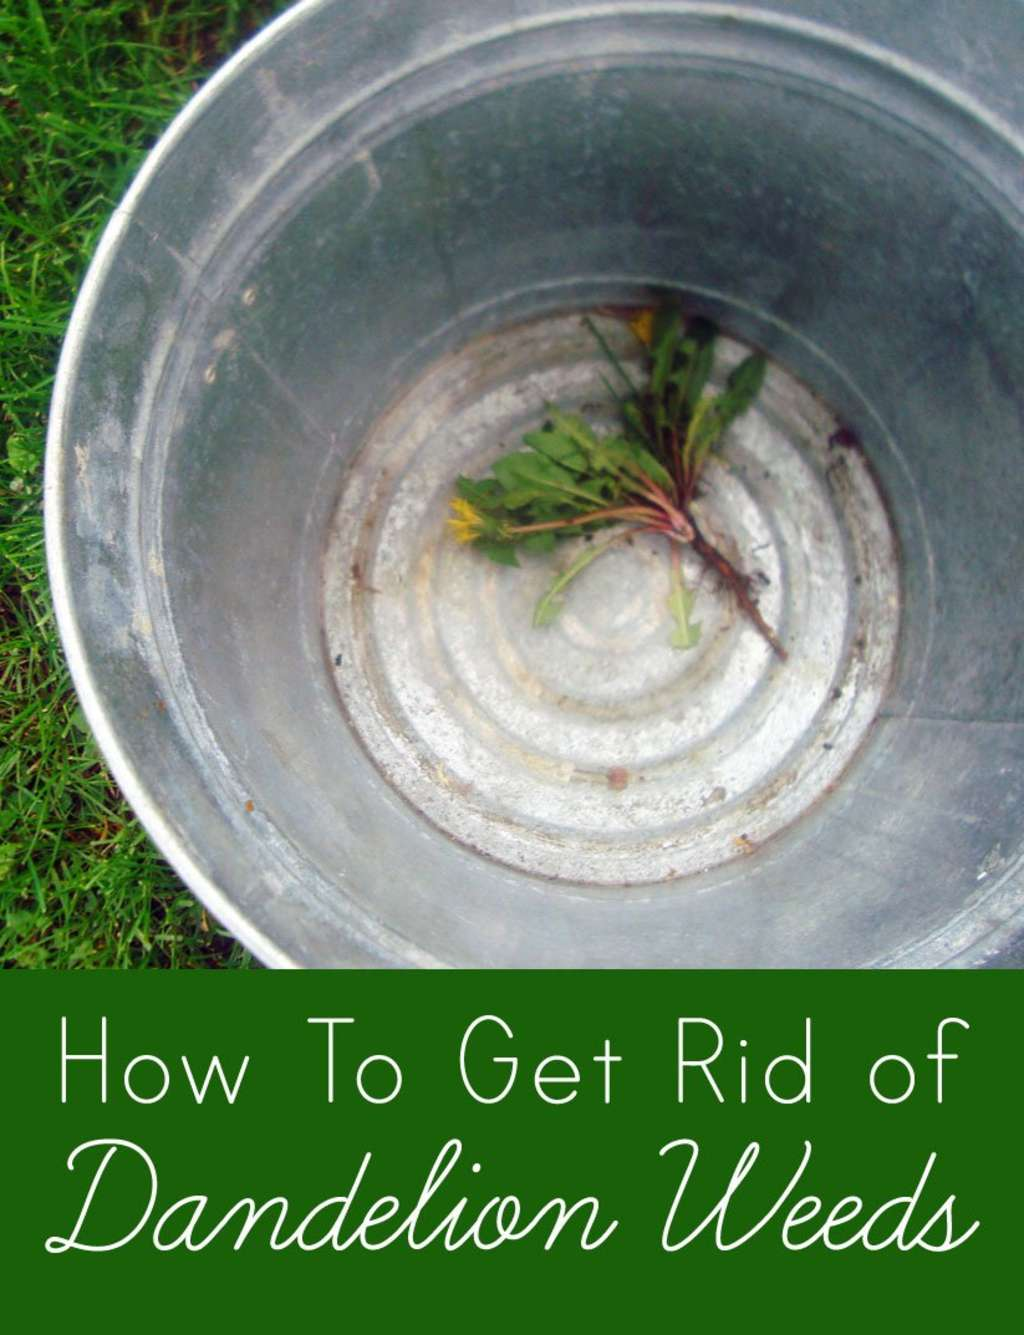 how to get rid of dandelions without killing grass